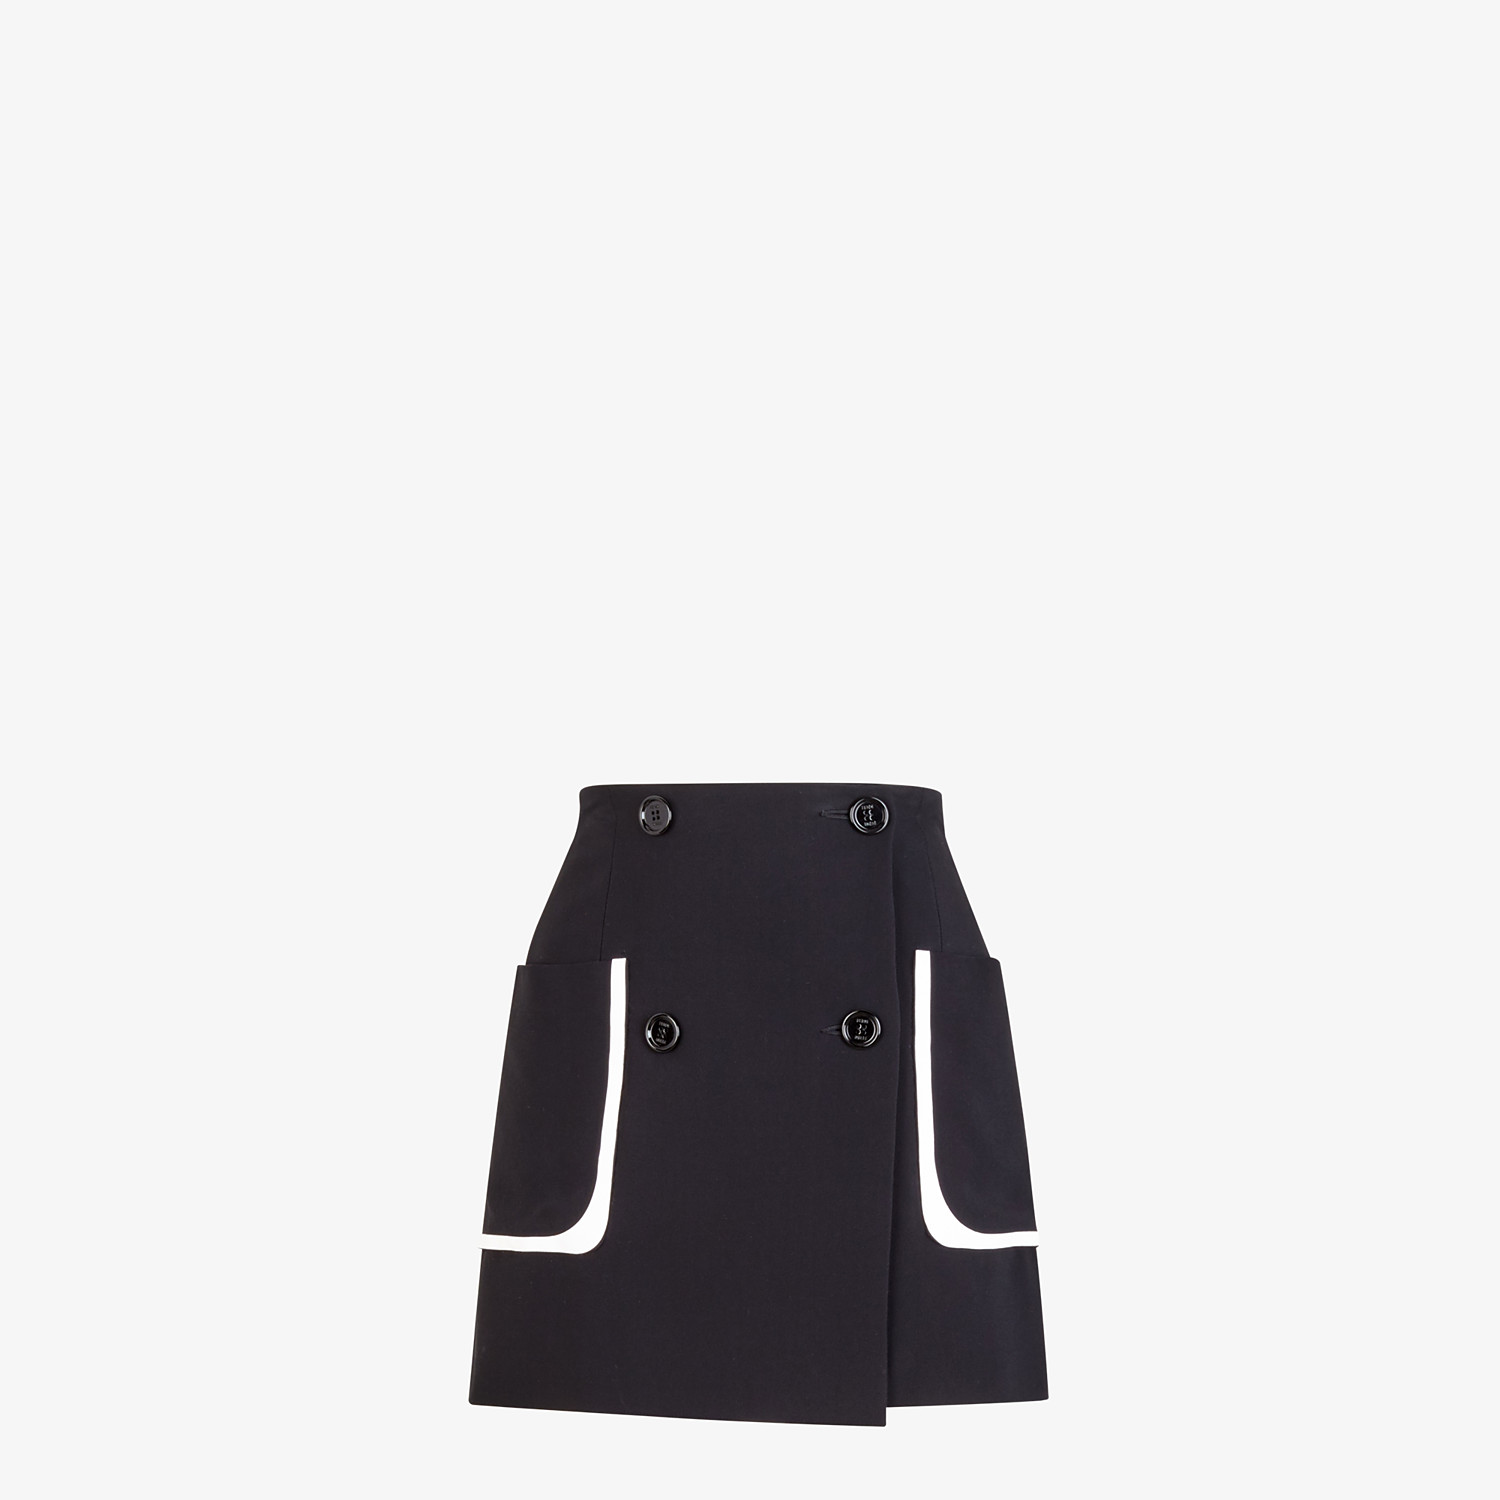 FENDI SKIRT - Black cady skirt - view 1 detail